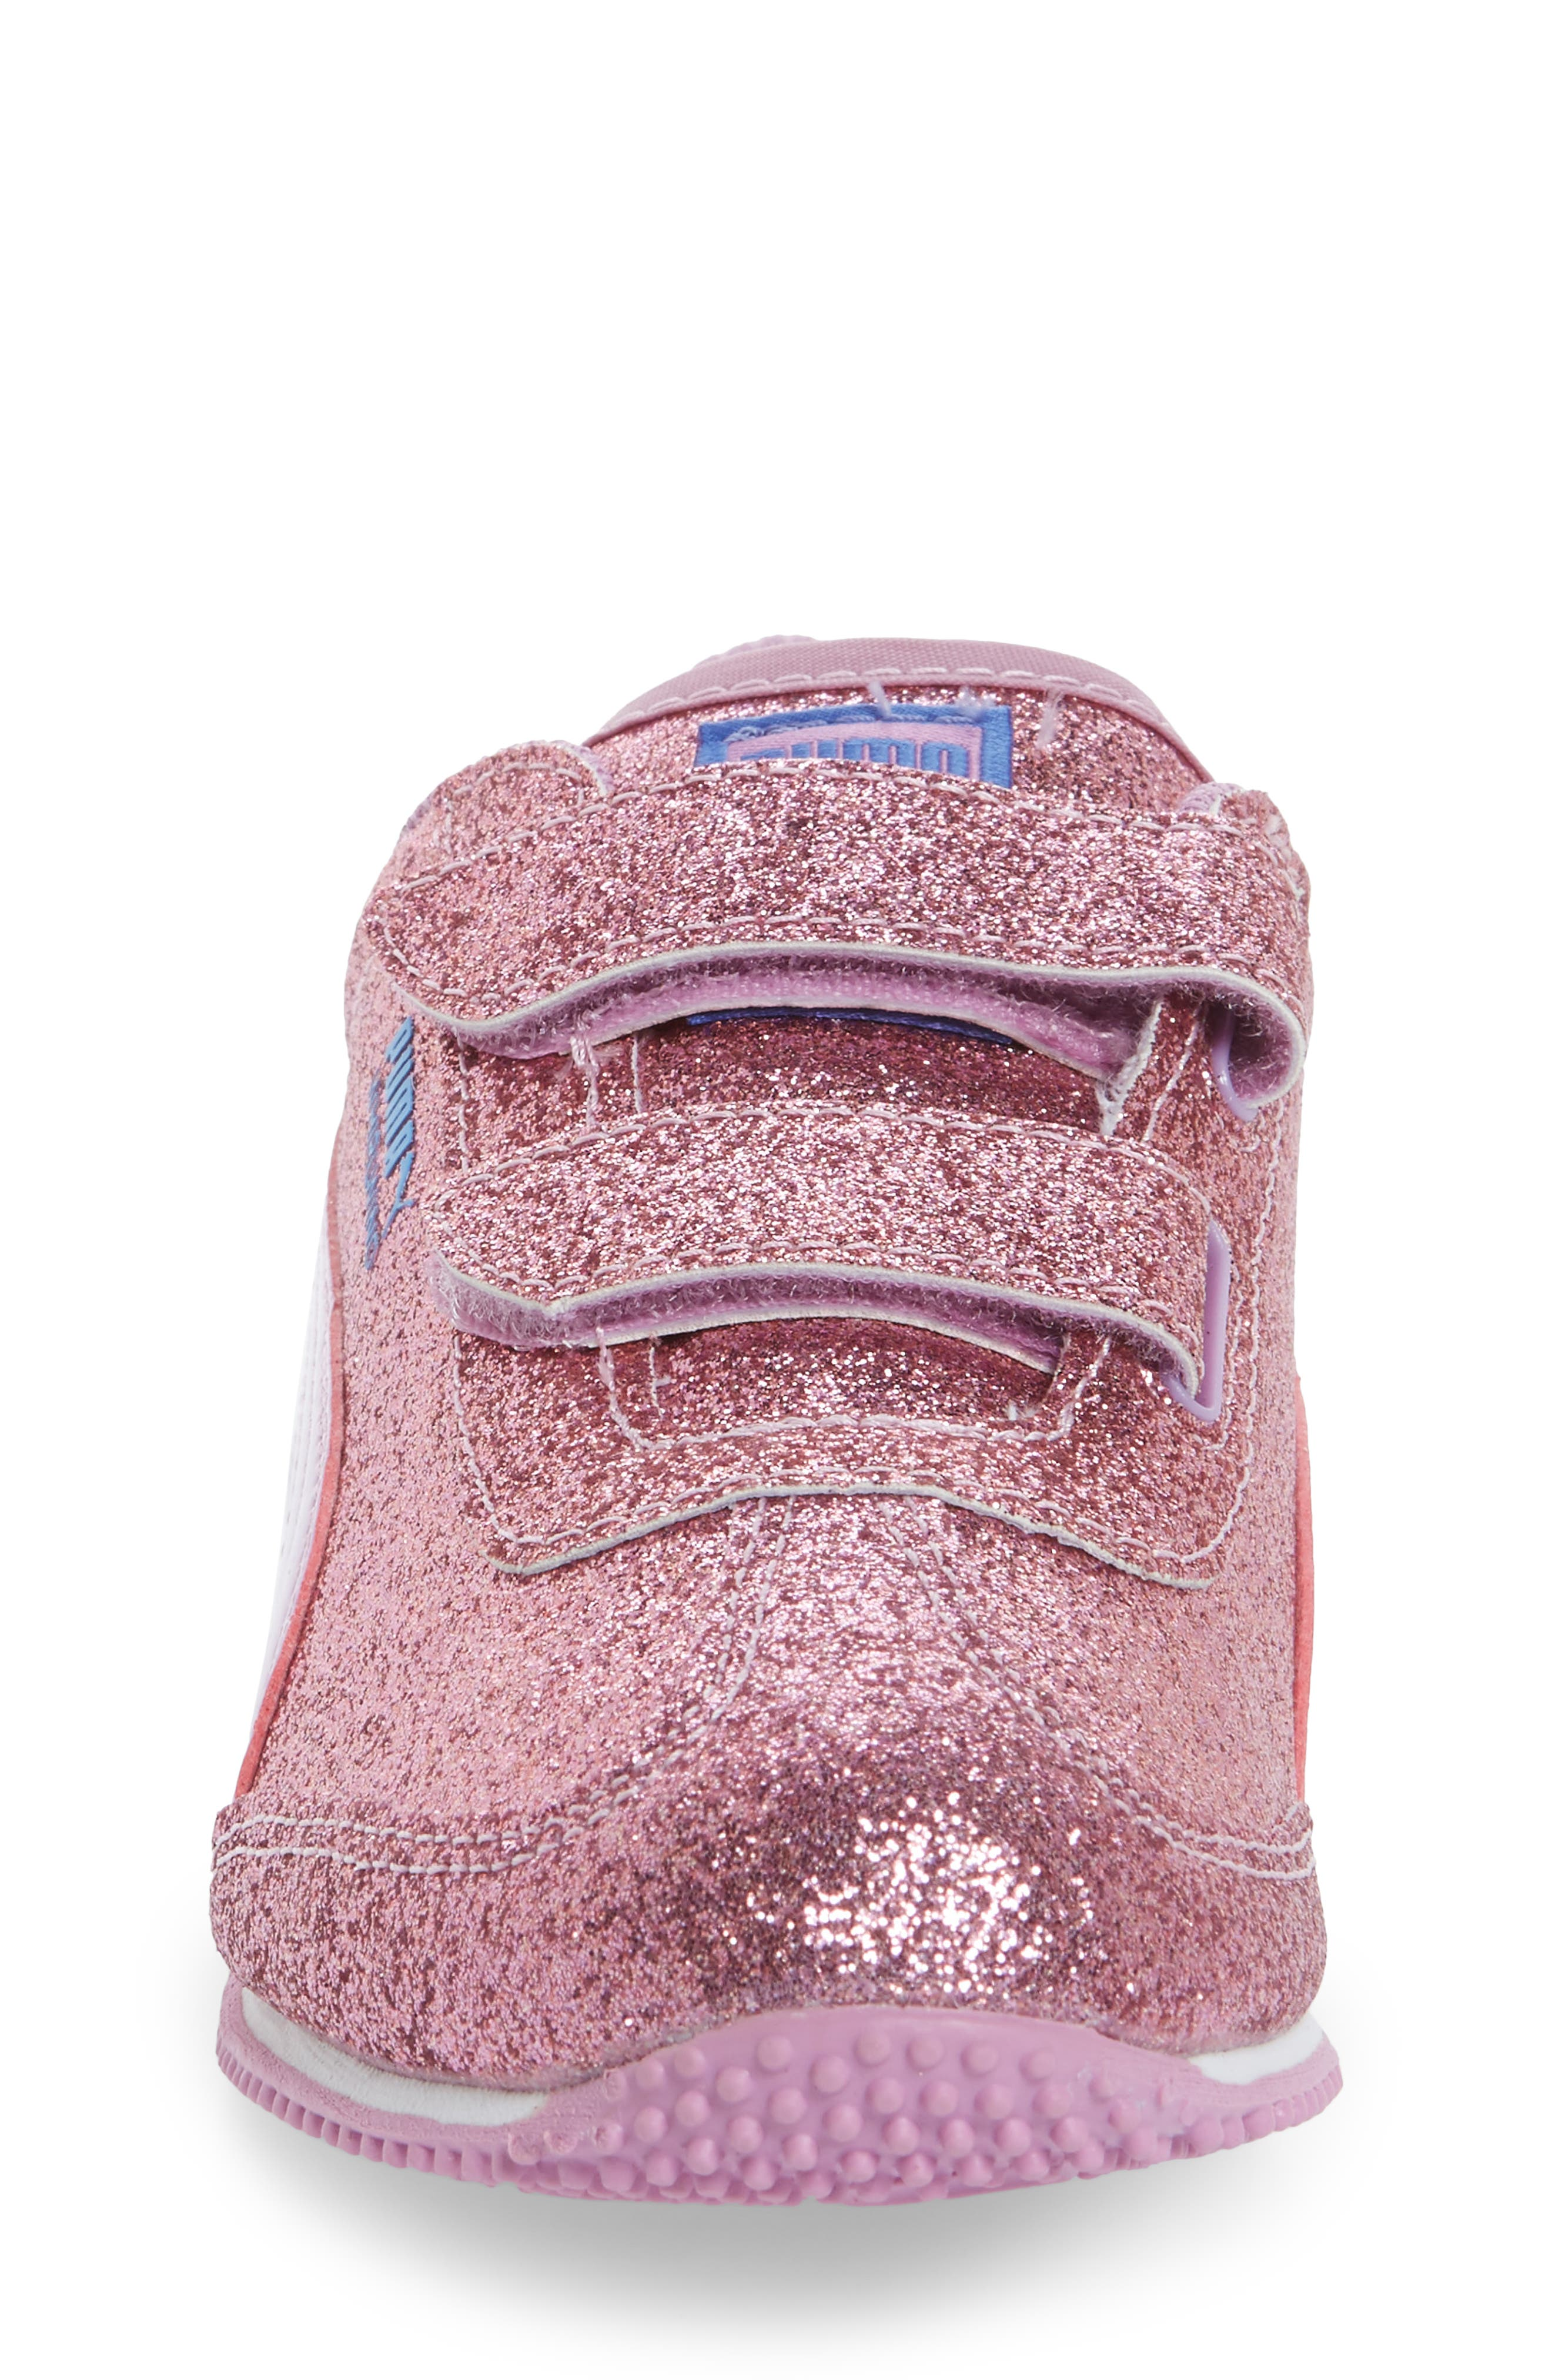 Whirlwind Glitz Sneaker,                             Alternate thumbnail 4, color,                             Purple